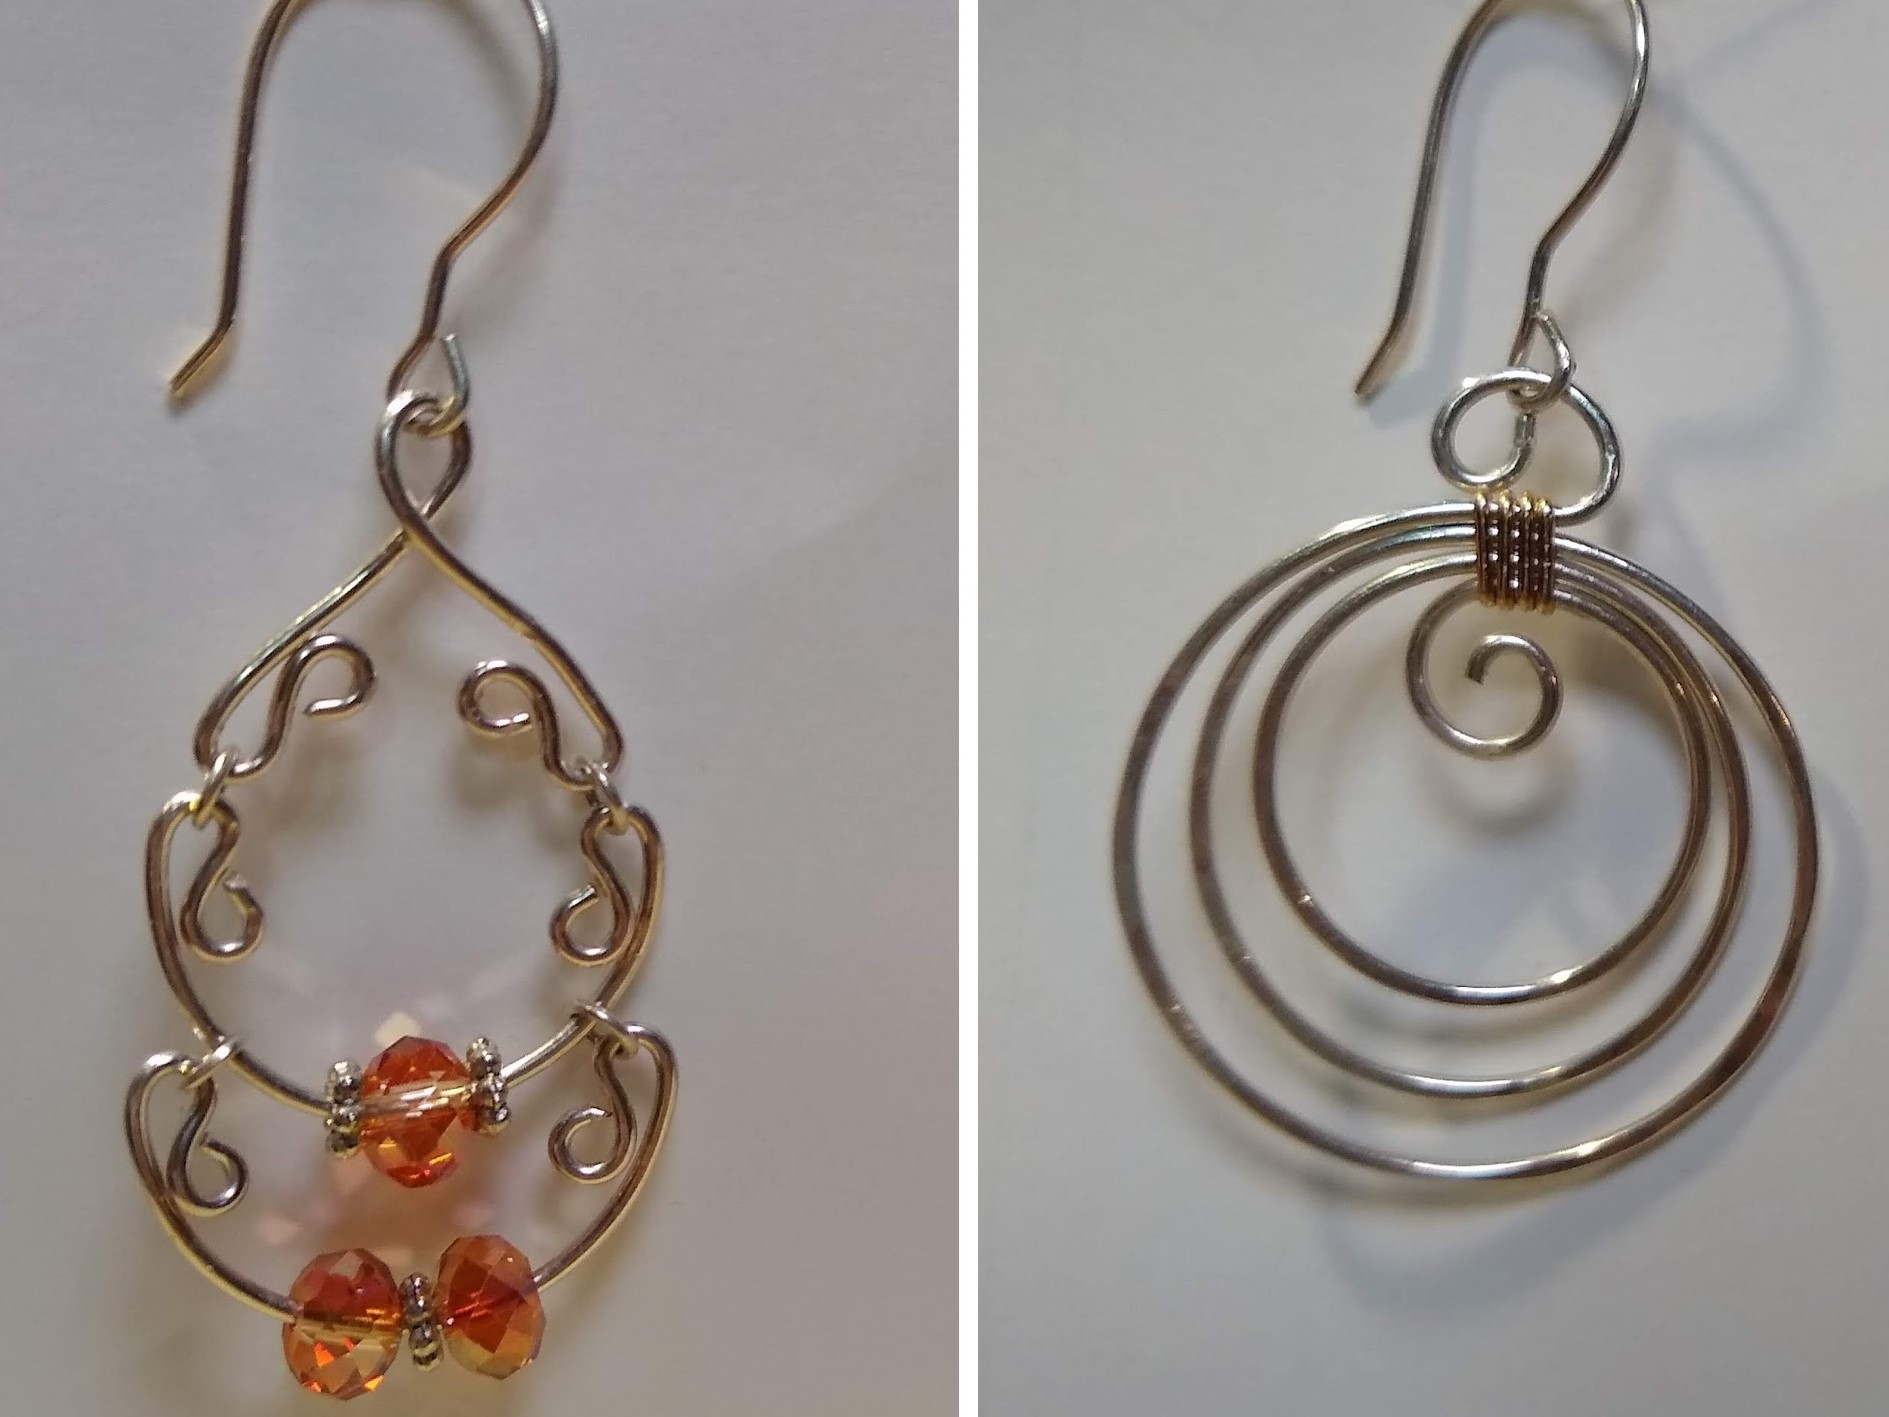 Gypsy and Concentric Earrings